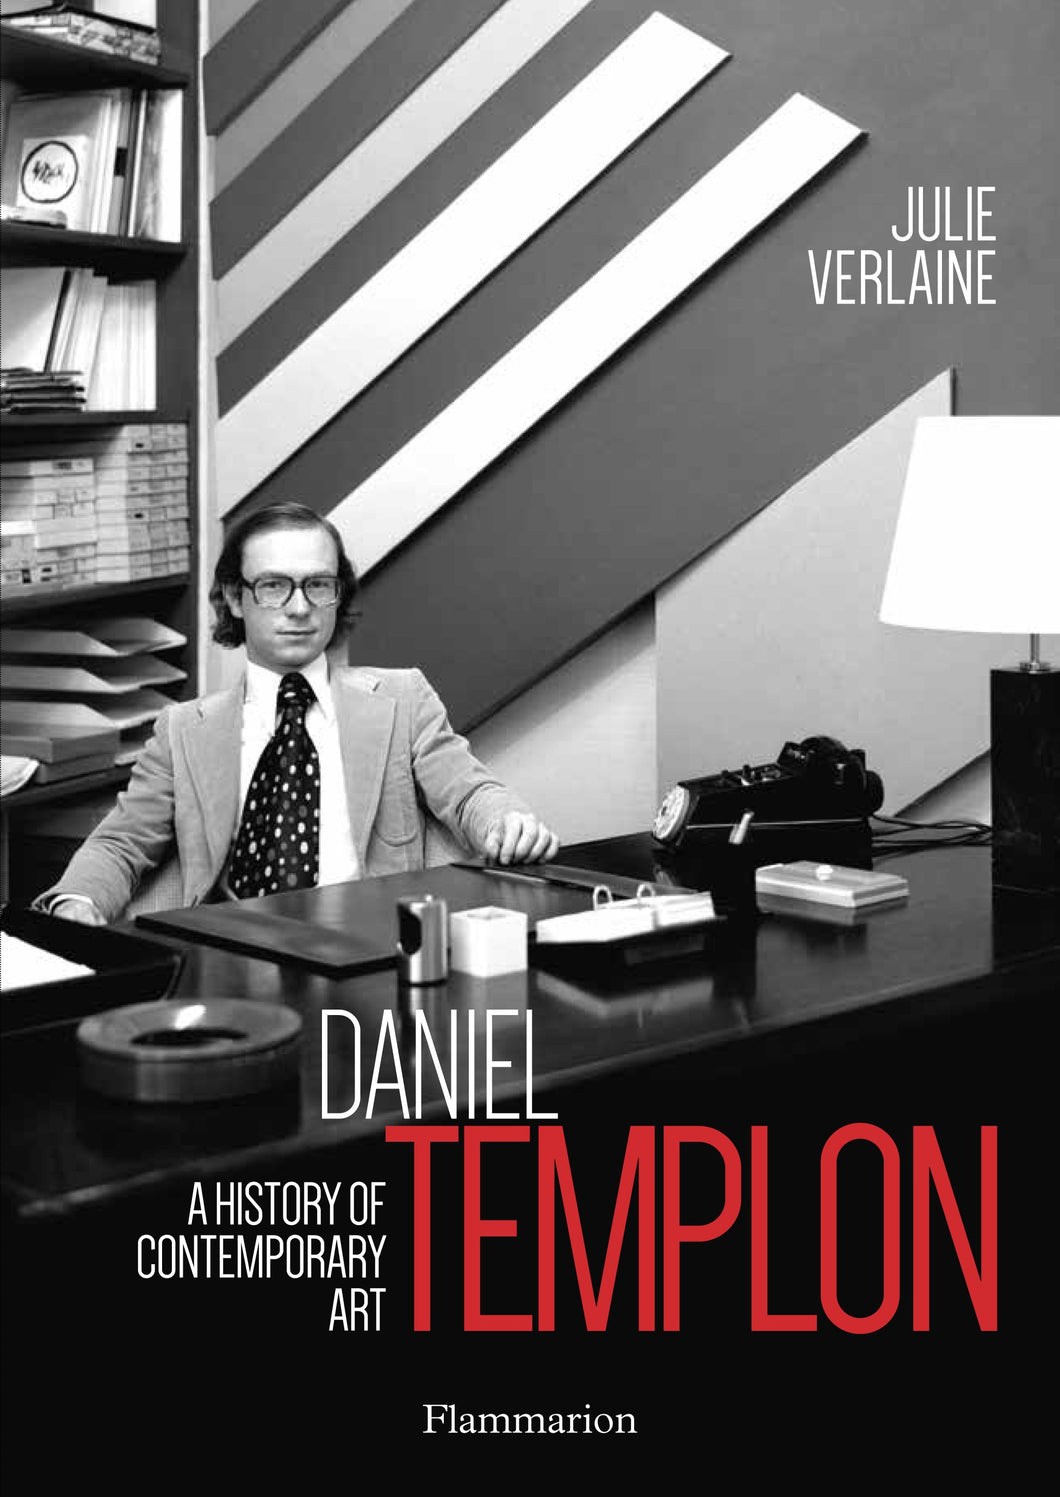 Daniel Templon - A History of Contemporary Art